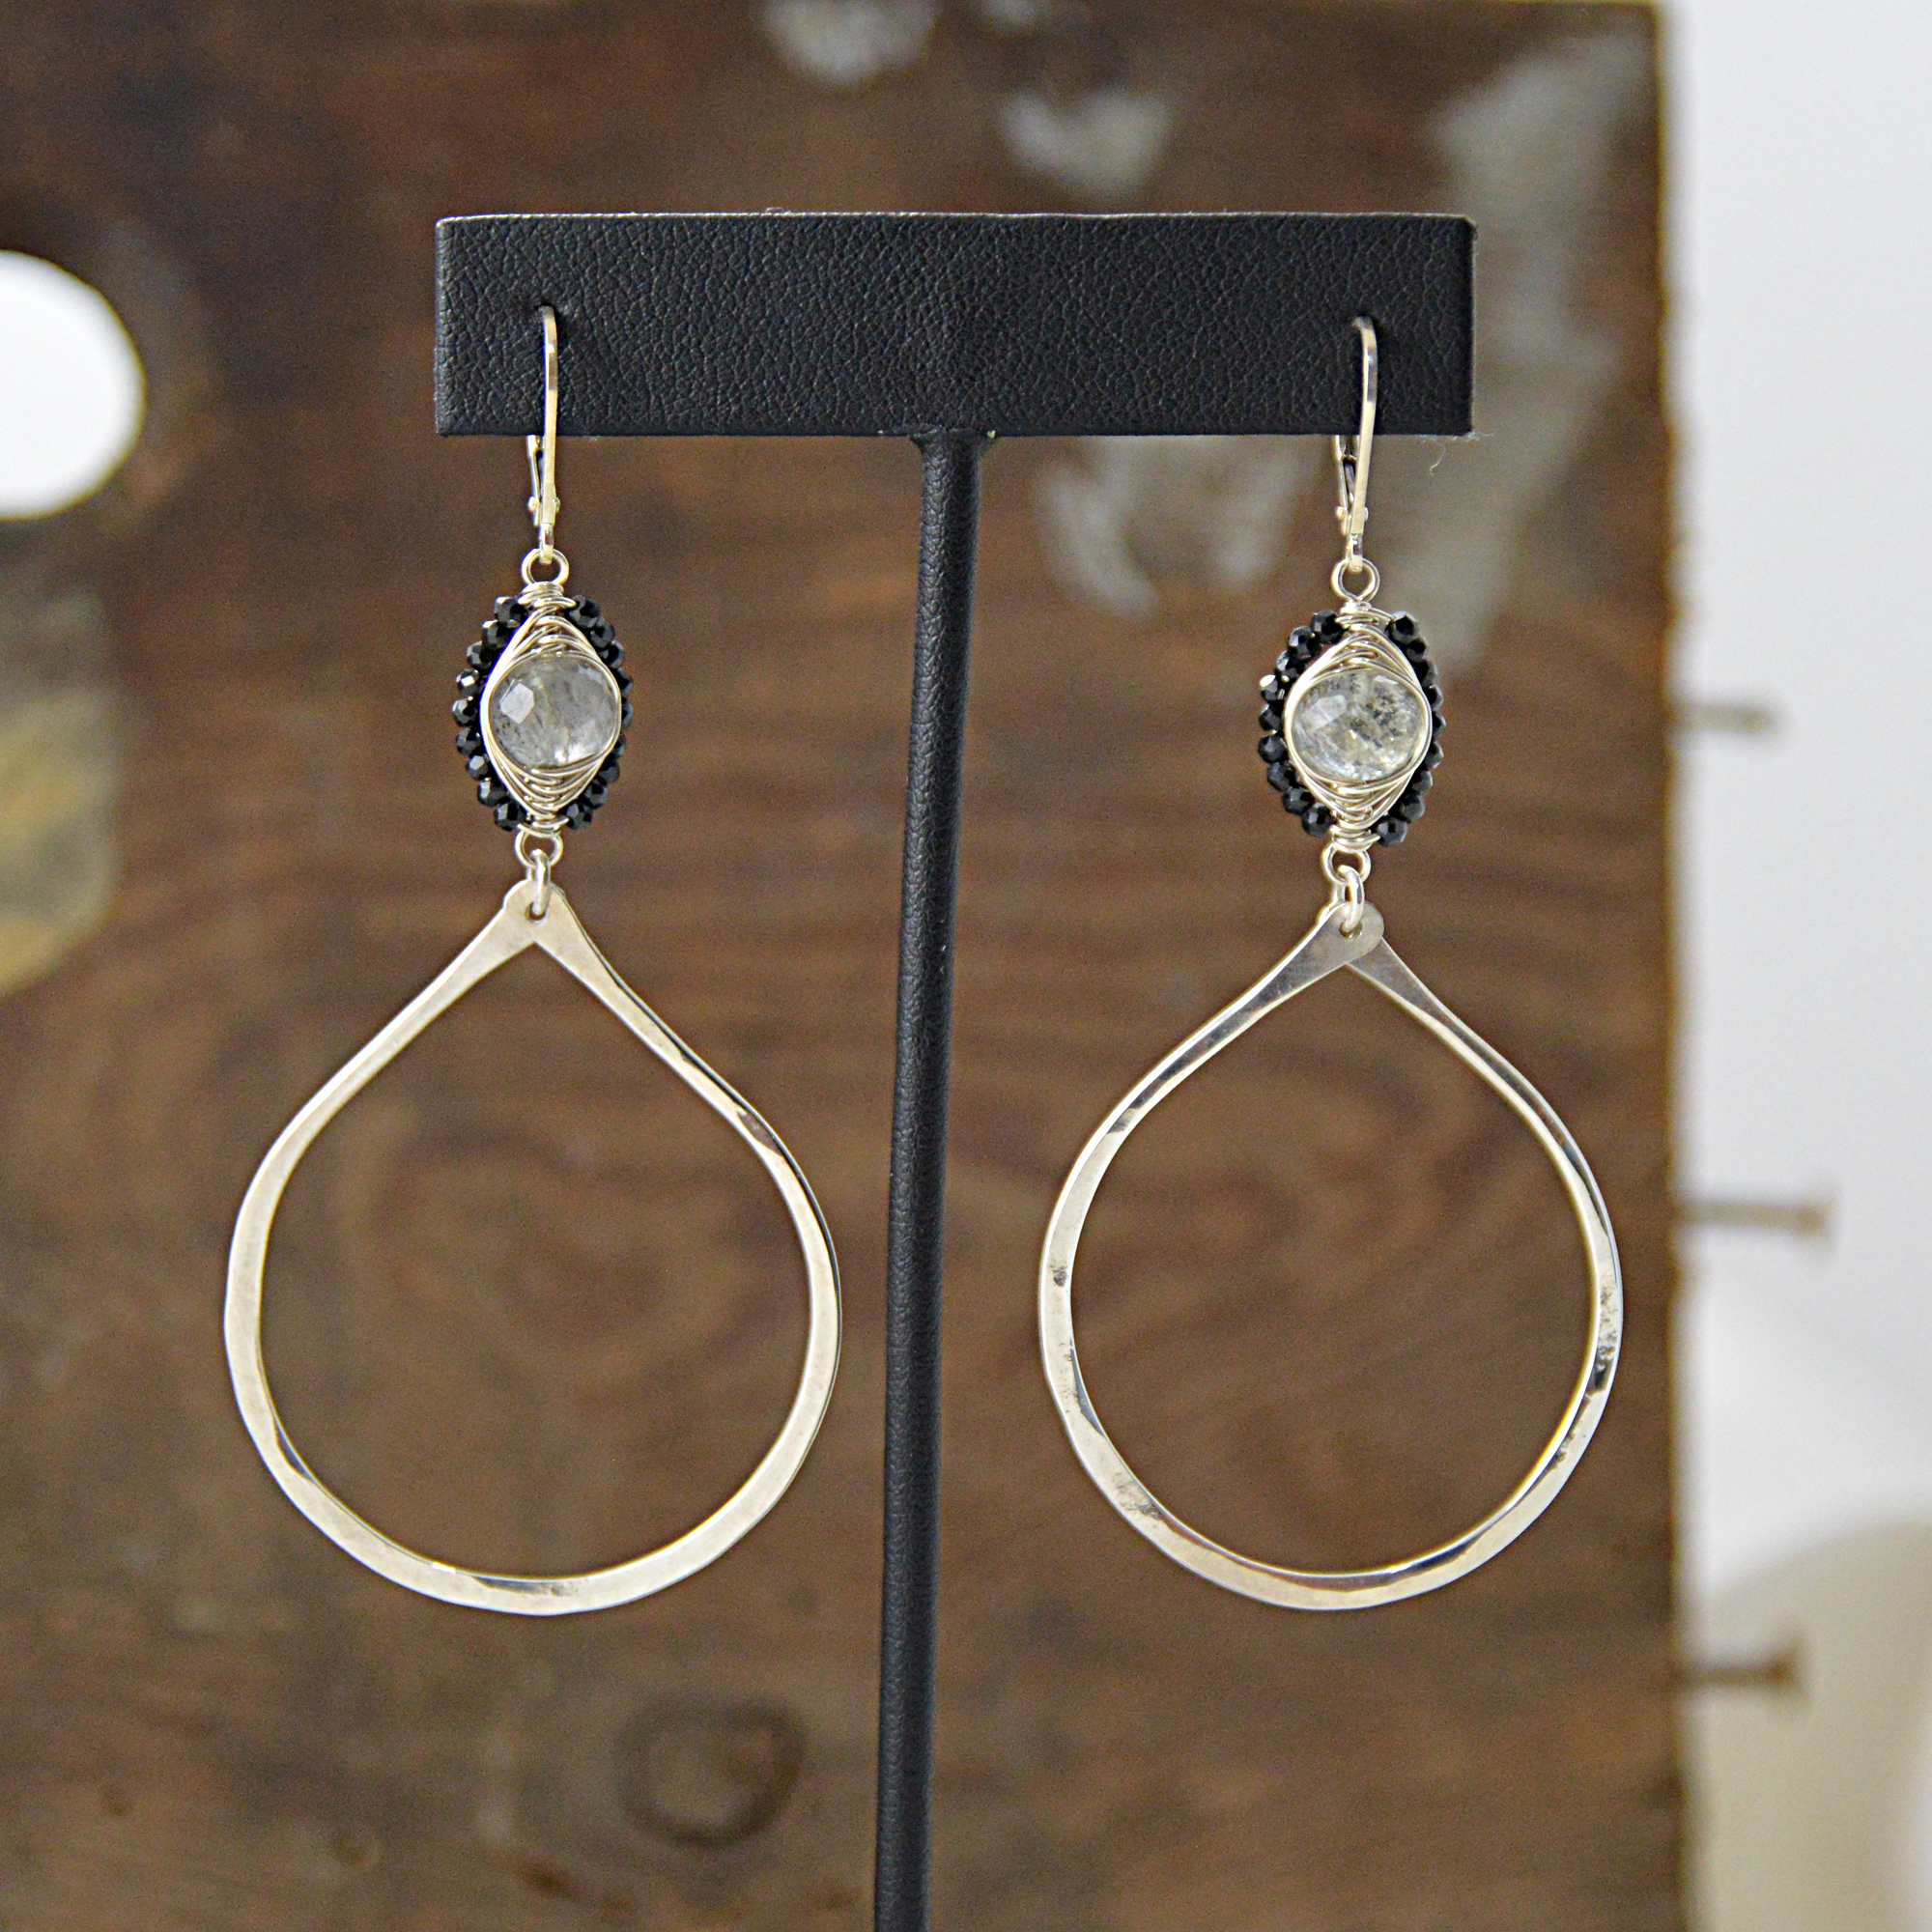 aquamarine sterling silver earrings made in buffalo ny gift shop